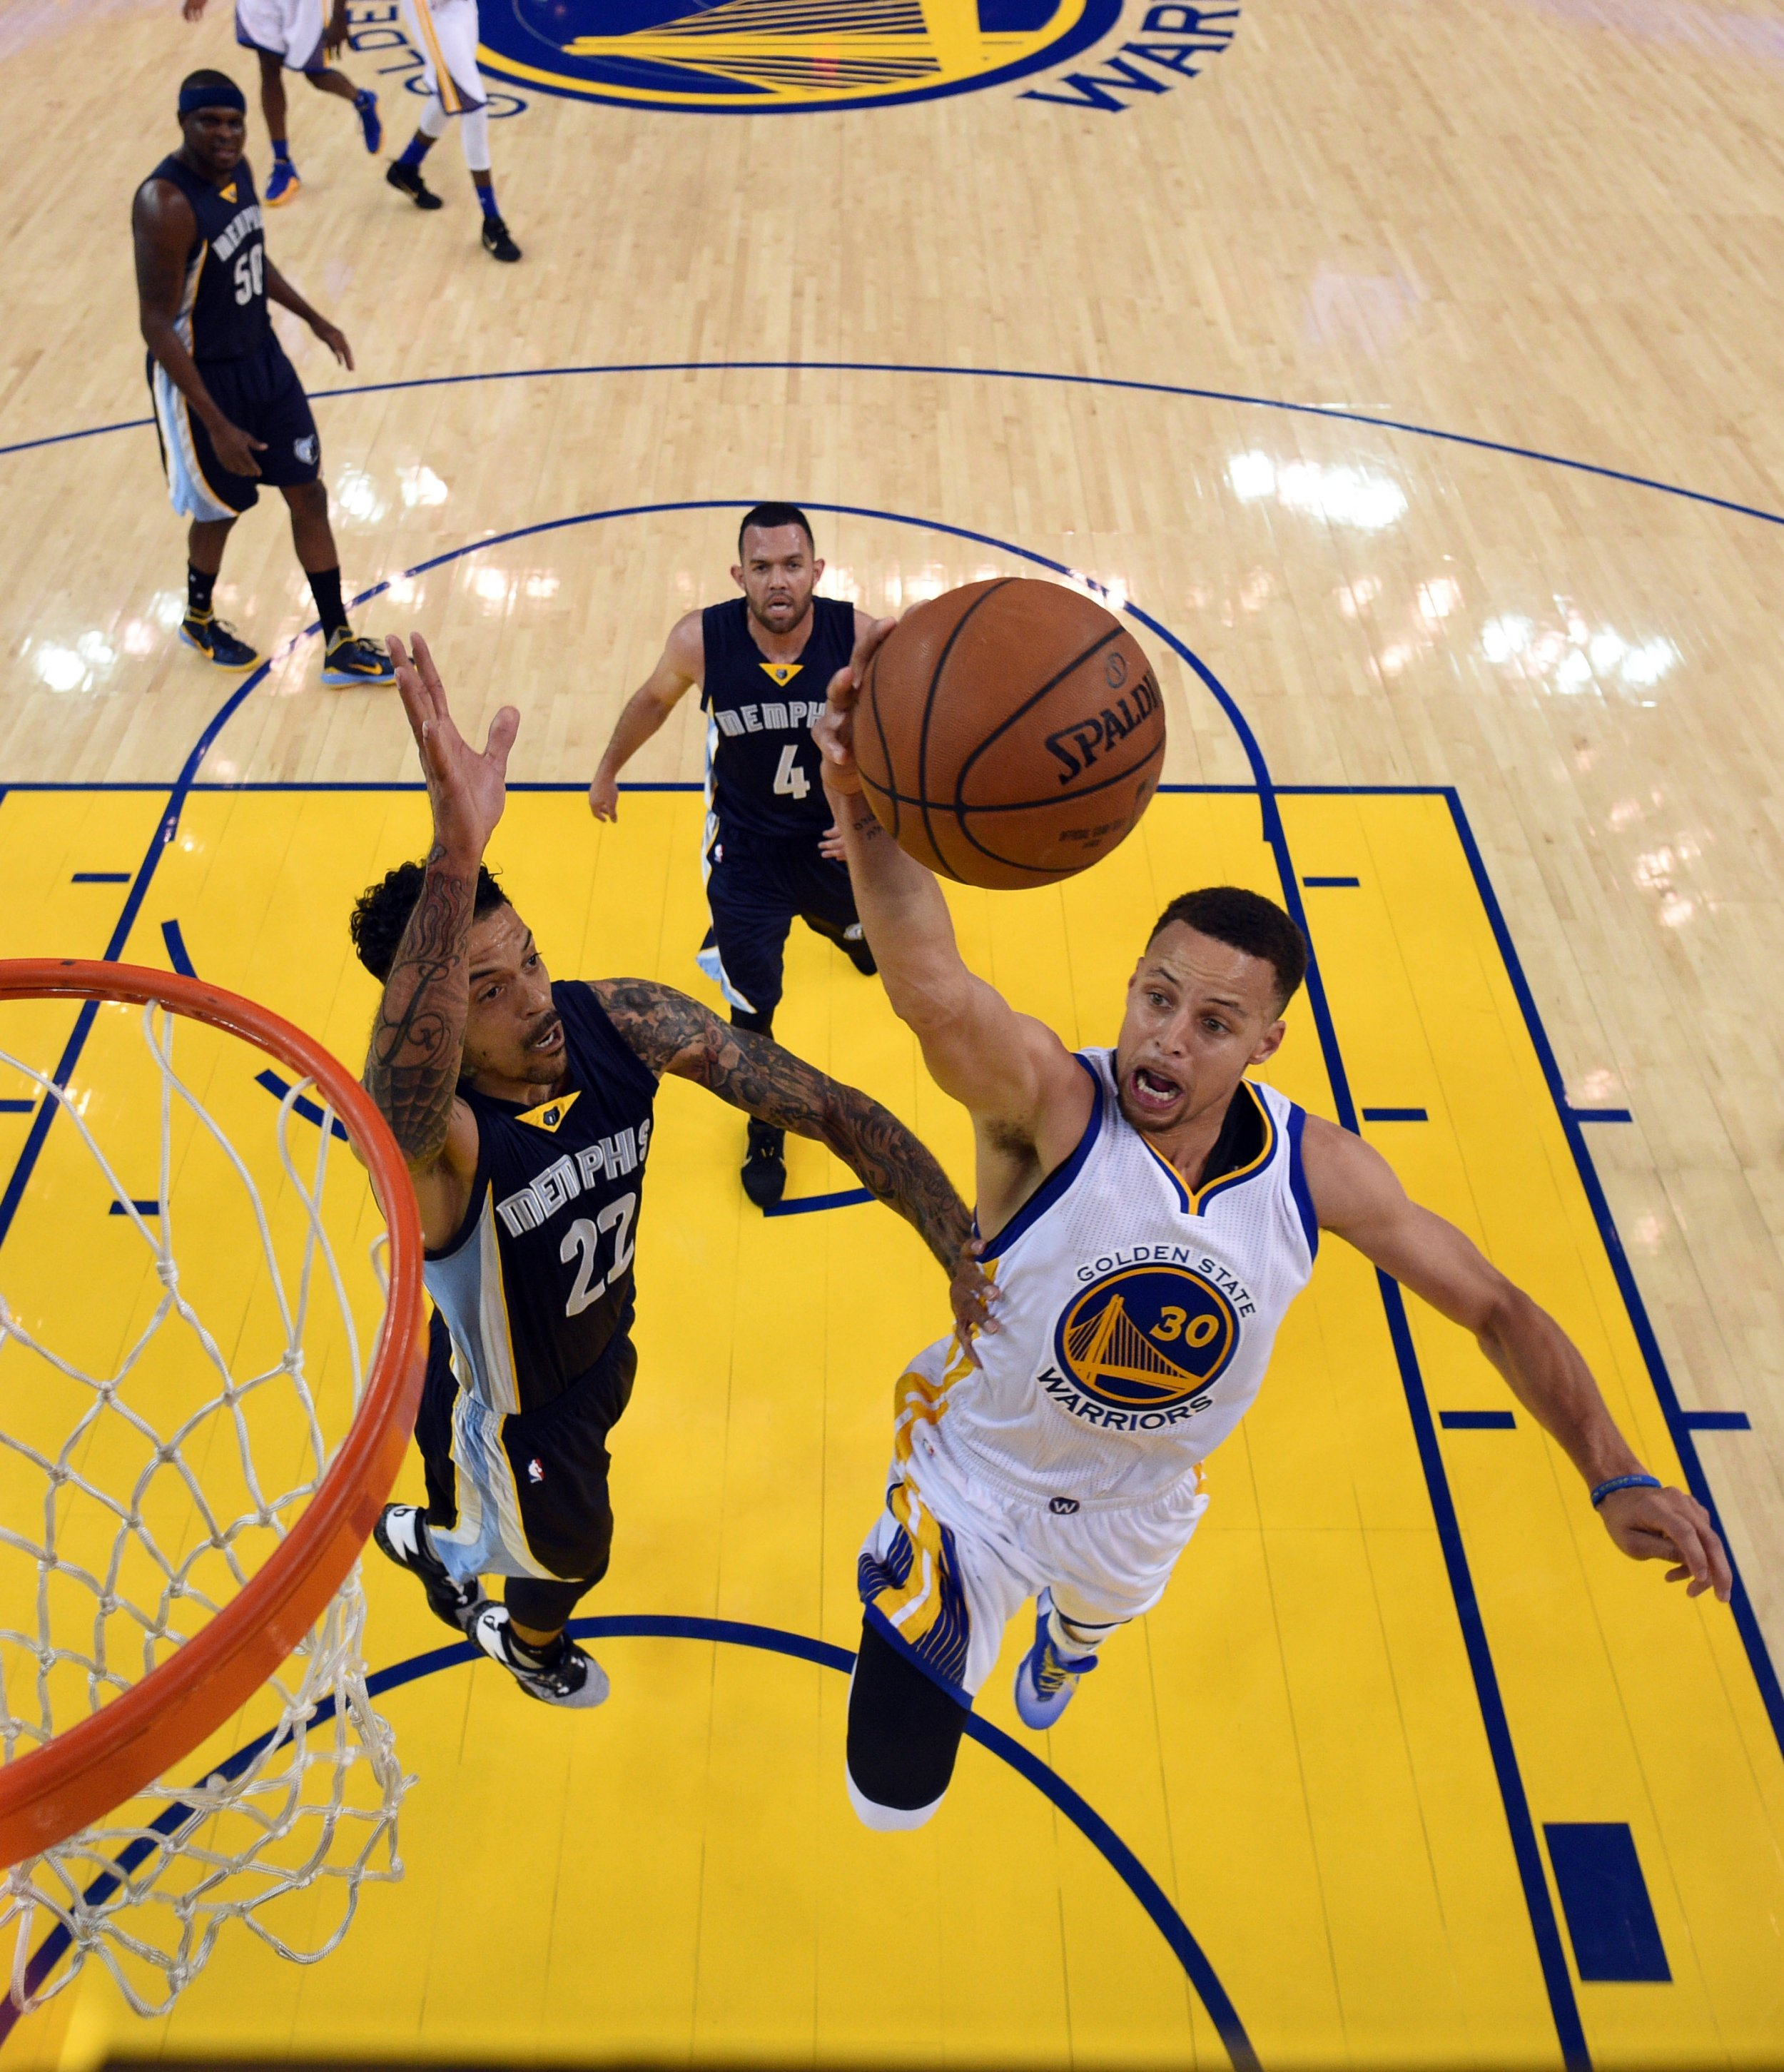 Warriors Record Without Stephen Curry 2017: Fun Wins! Warriors Break Record, Land Sock In Jaw To Bulls